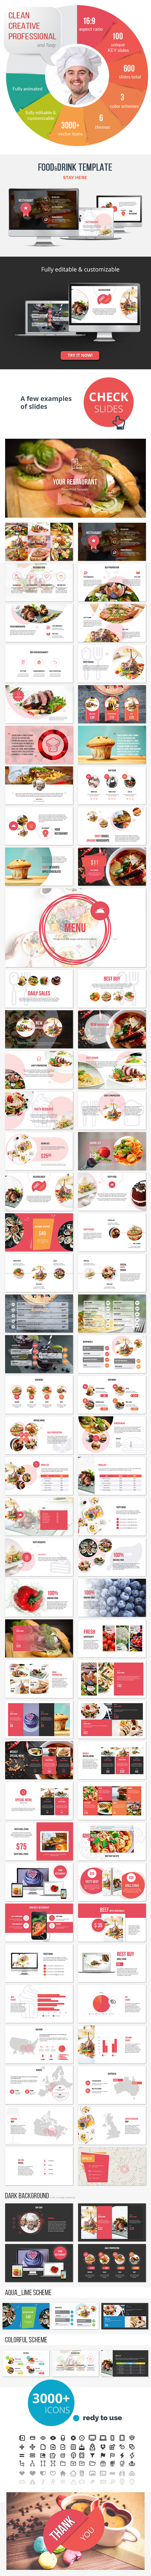 Food & Drinks Keynote Presentation Template - Keynote Templates Presentation Templates